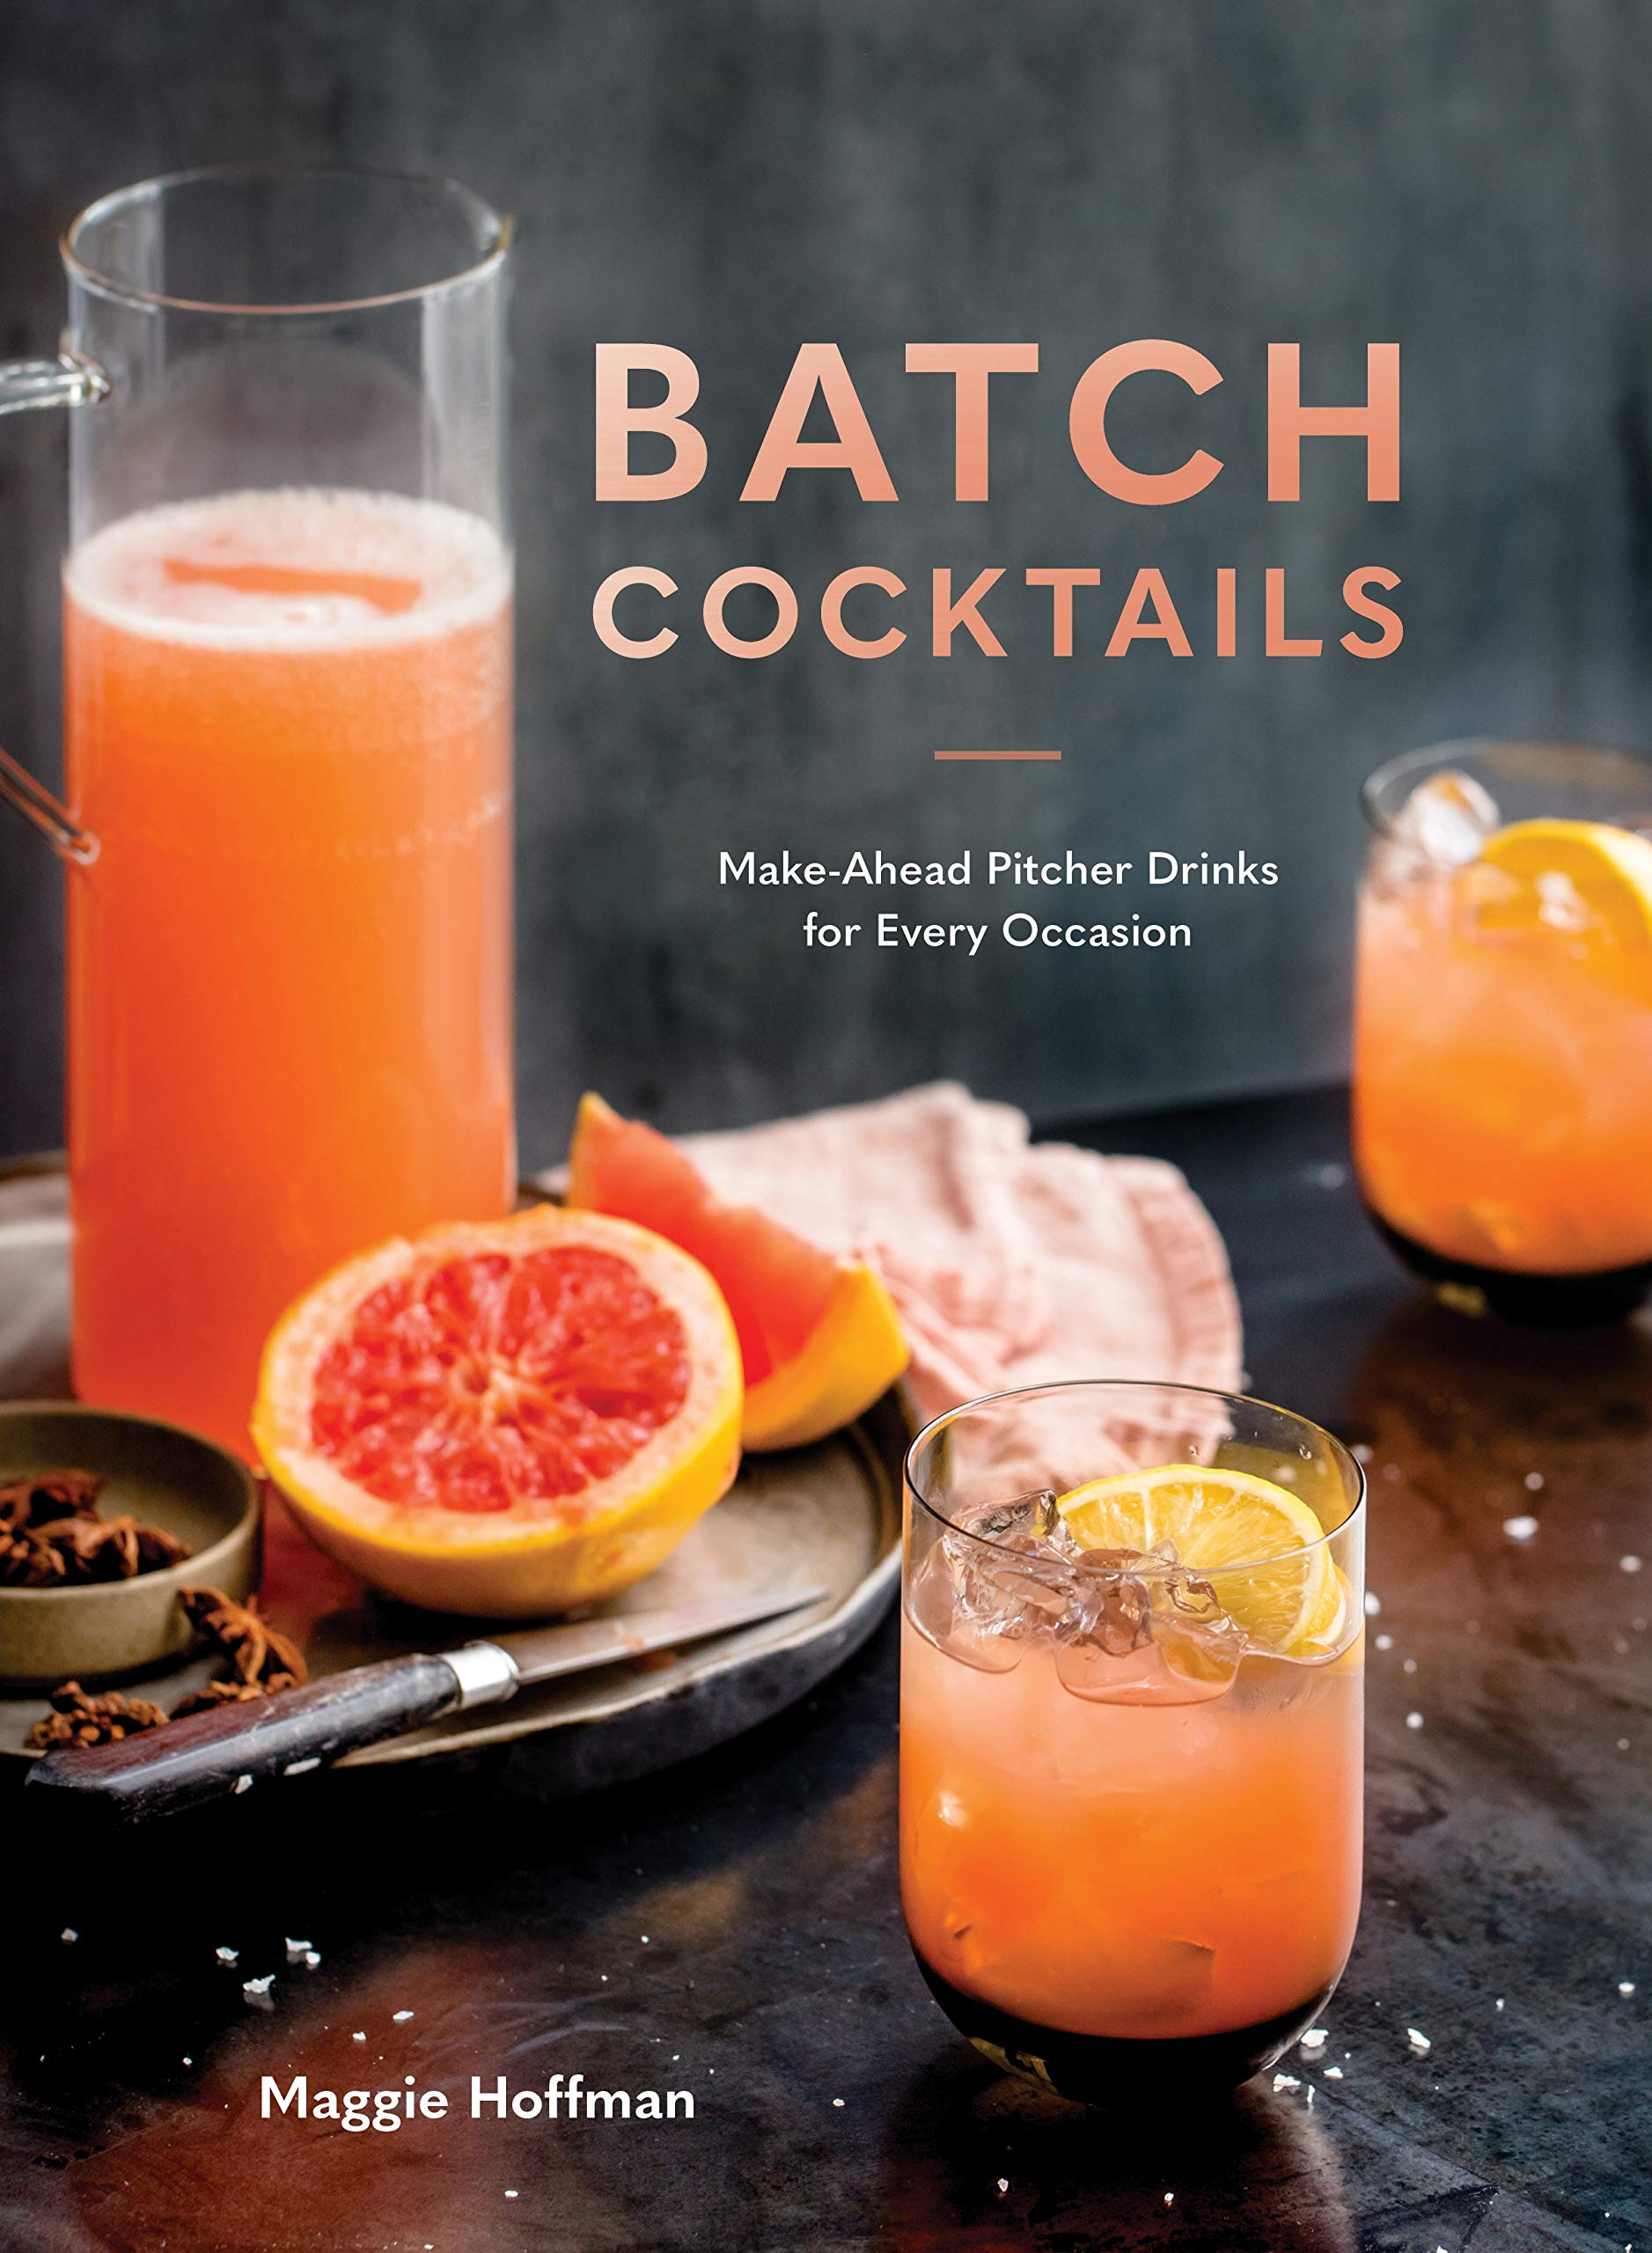 c1d377d7a3c6d Batch Cocktails: Make-Ahead Pitcher Drinks for Every Occasion ...